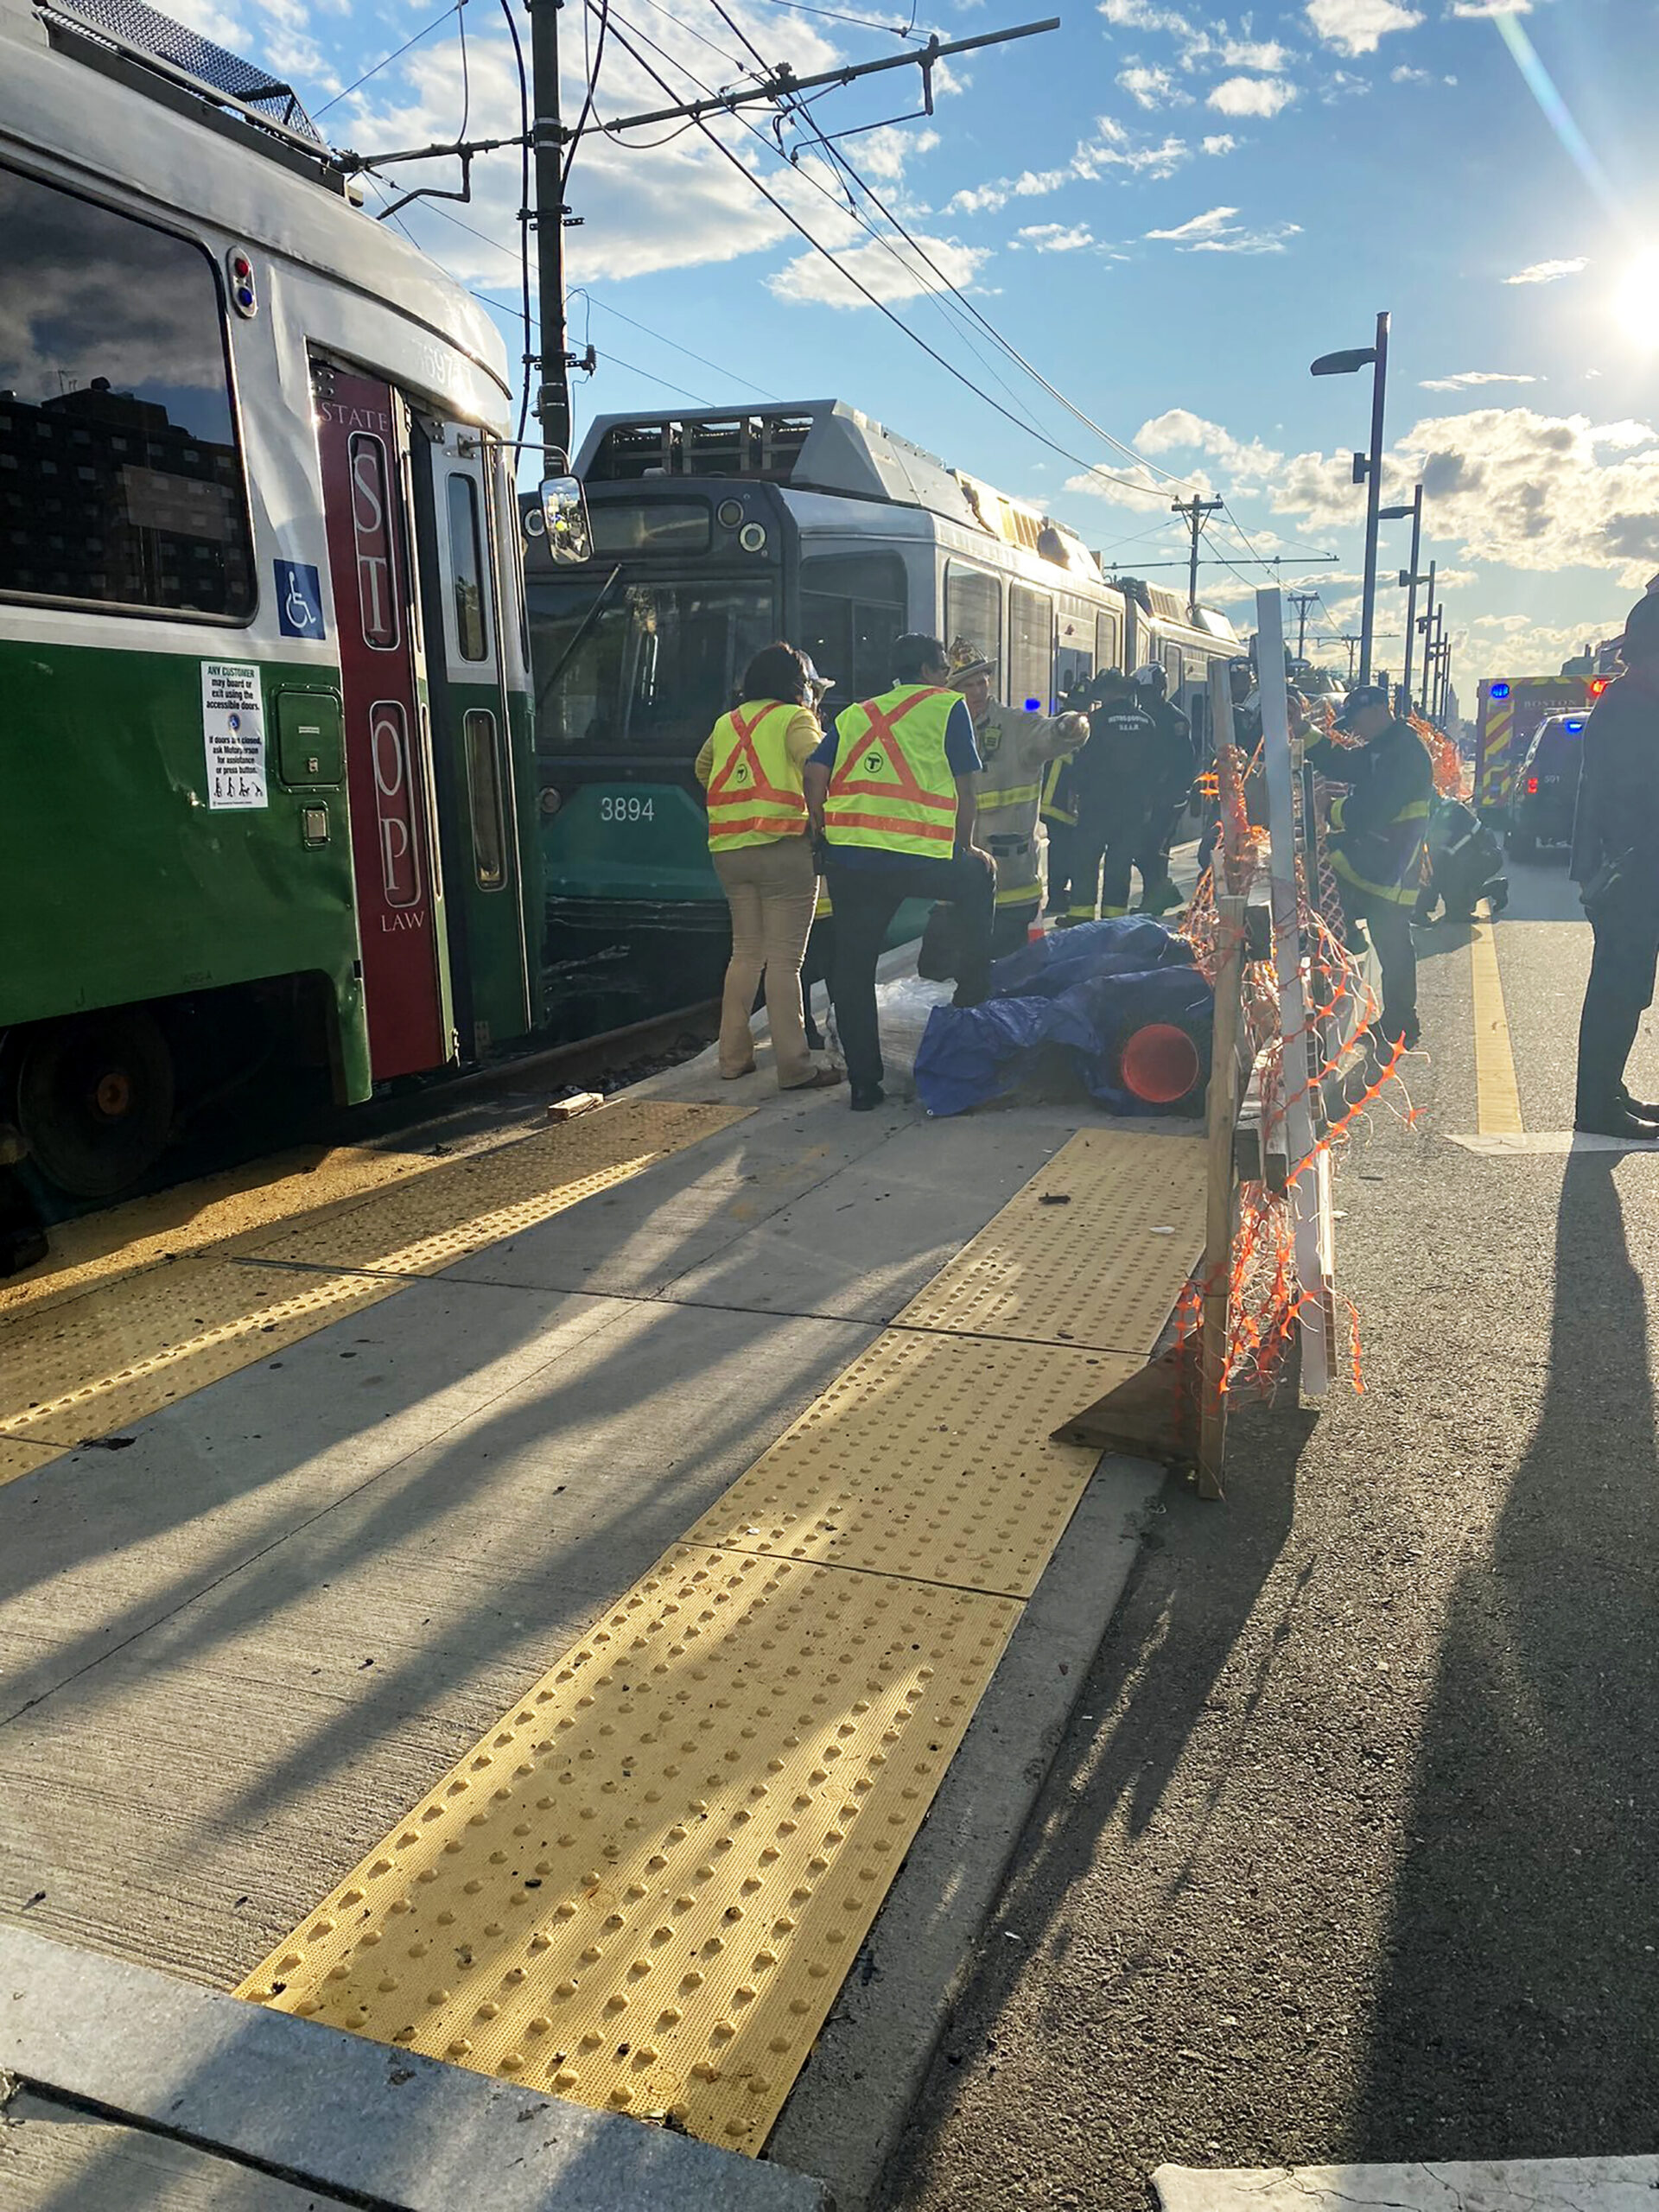 <i>Boston Fire Department</i><br/>Multiple people were reported injured after the Massachusetts Bay Transport Authority said two trains collided with one another on the Commonwealth Avenue rail line in Boston.